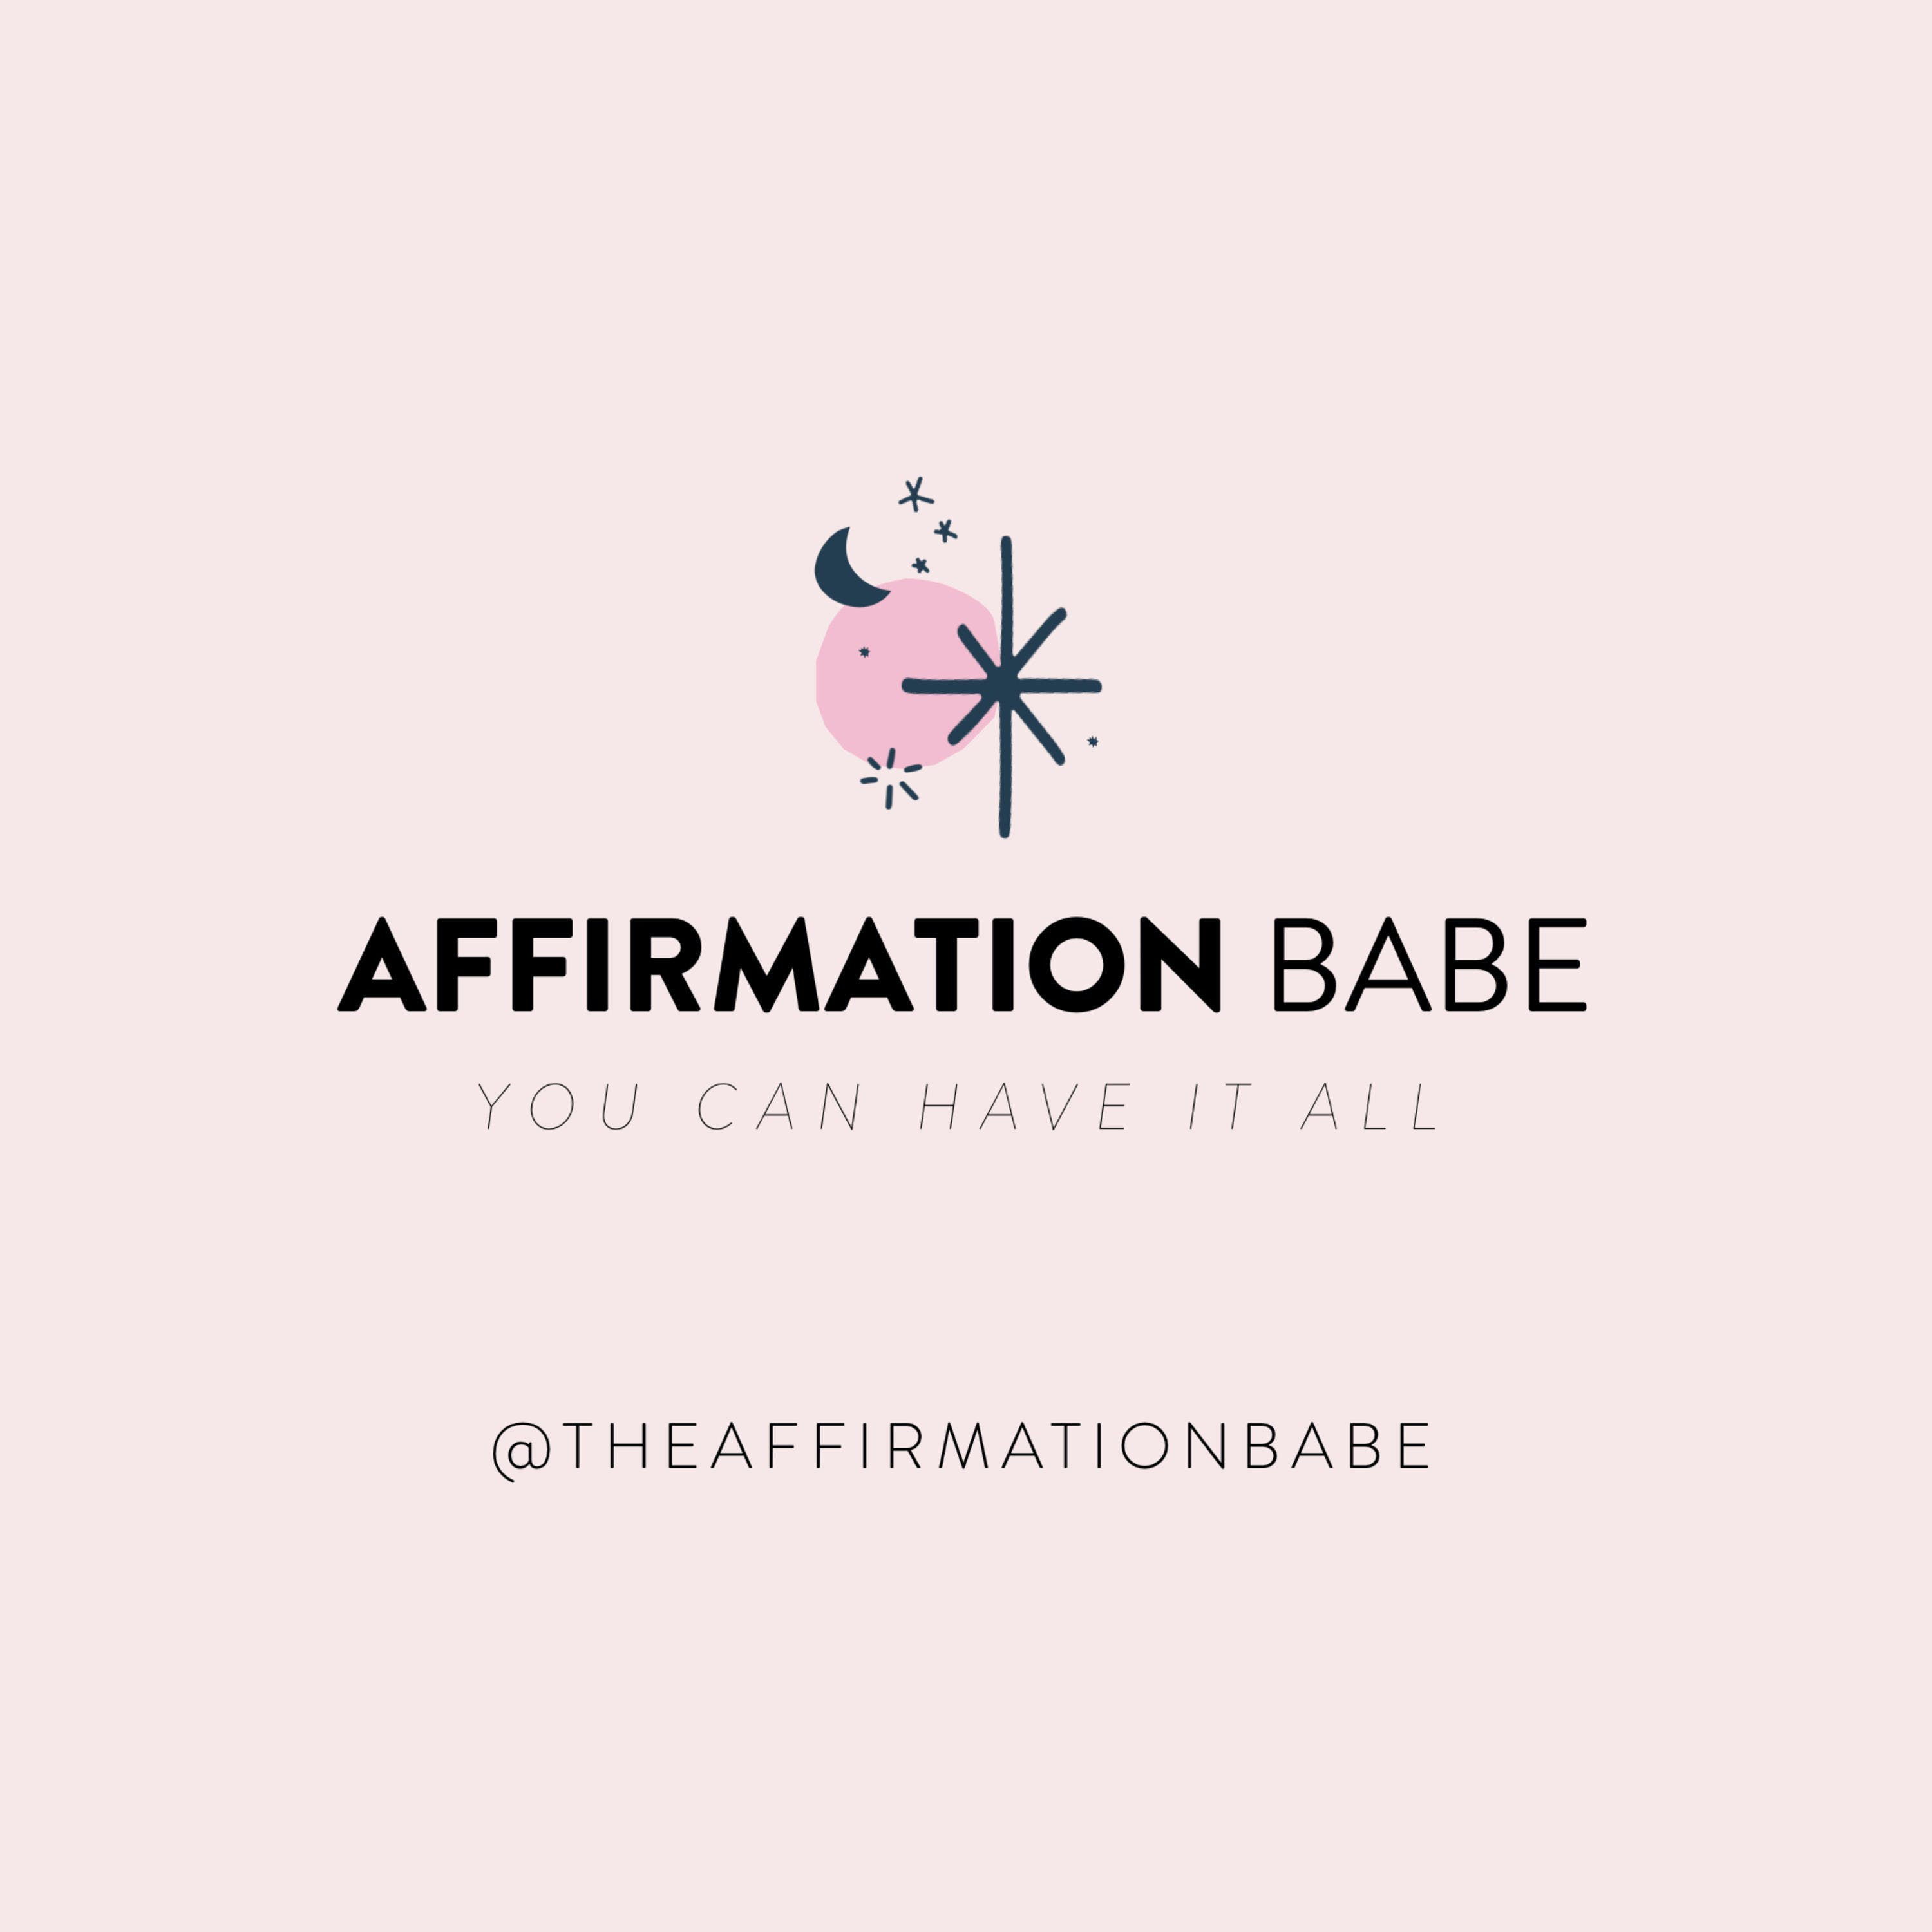 Affirmations to Heal the Planet 🌎